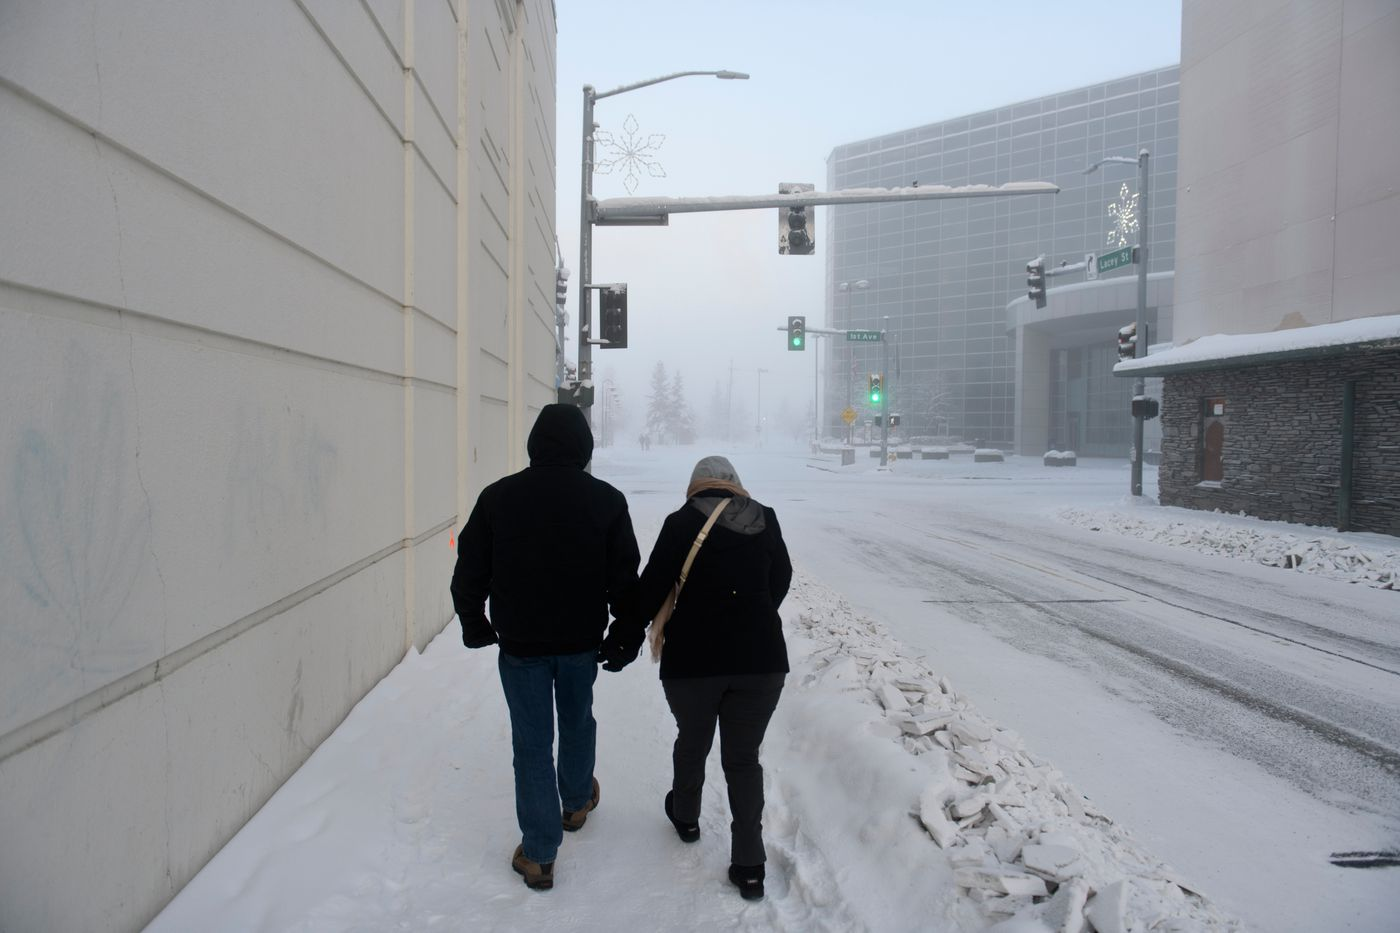 Wayne and Cathy Hofer walk around downtown Fairbanks in temperatures near minus 36 degrees. The Hofers, visiting to see the northern lights, said they probably should've packed more layers of clothing. (Marc Lester / ADN)